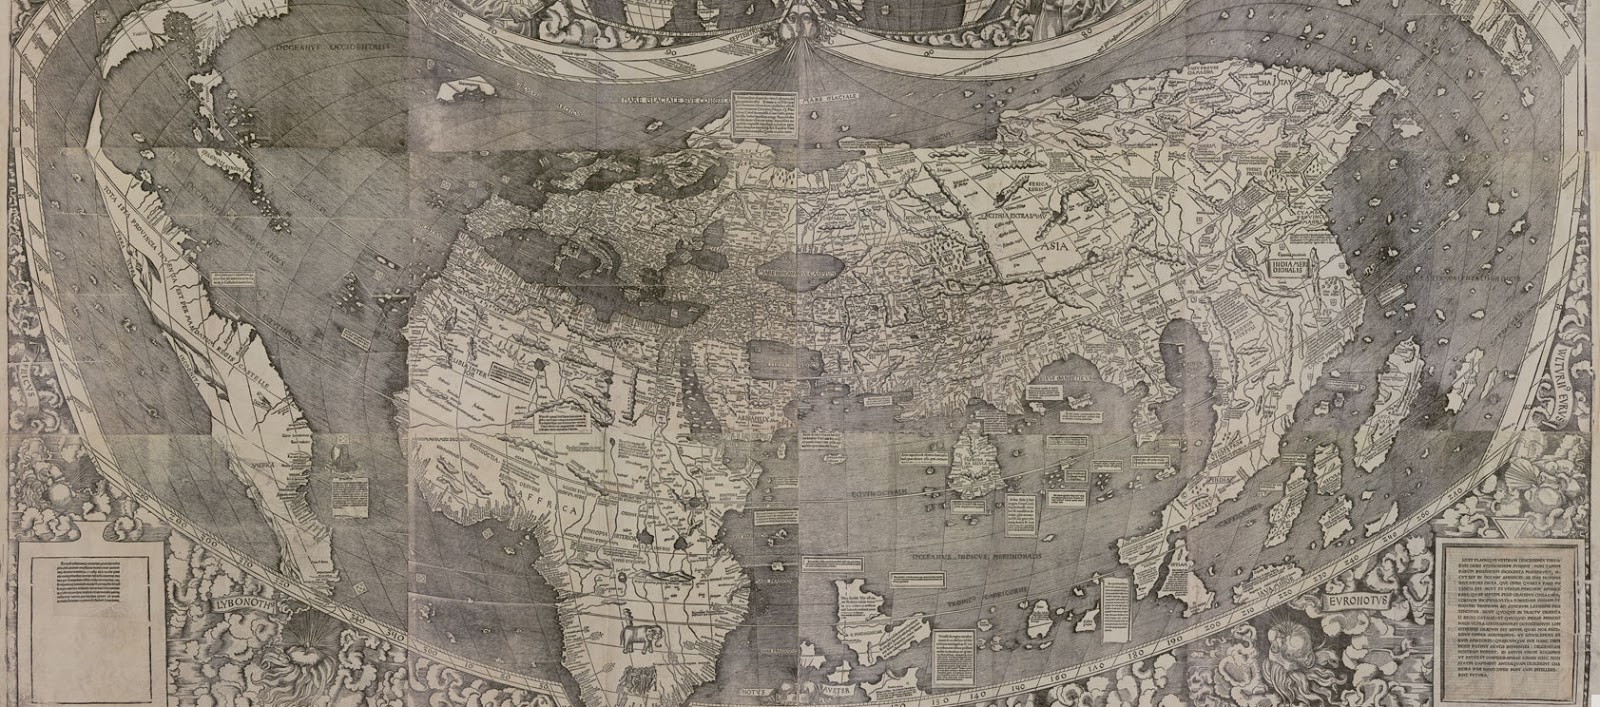 The interactive version of Vespucci and Waldseemüller's 1507 map